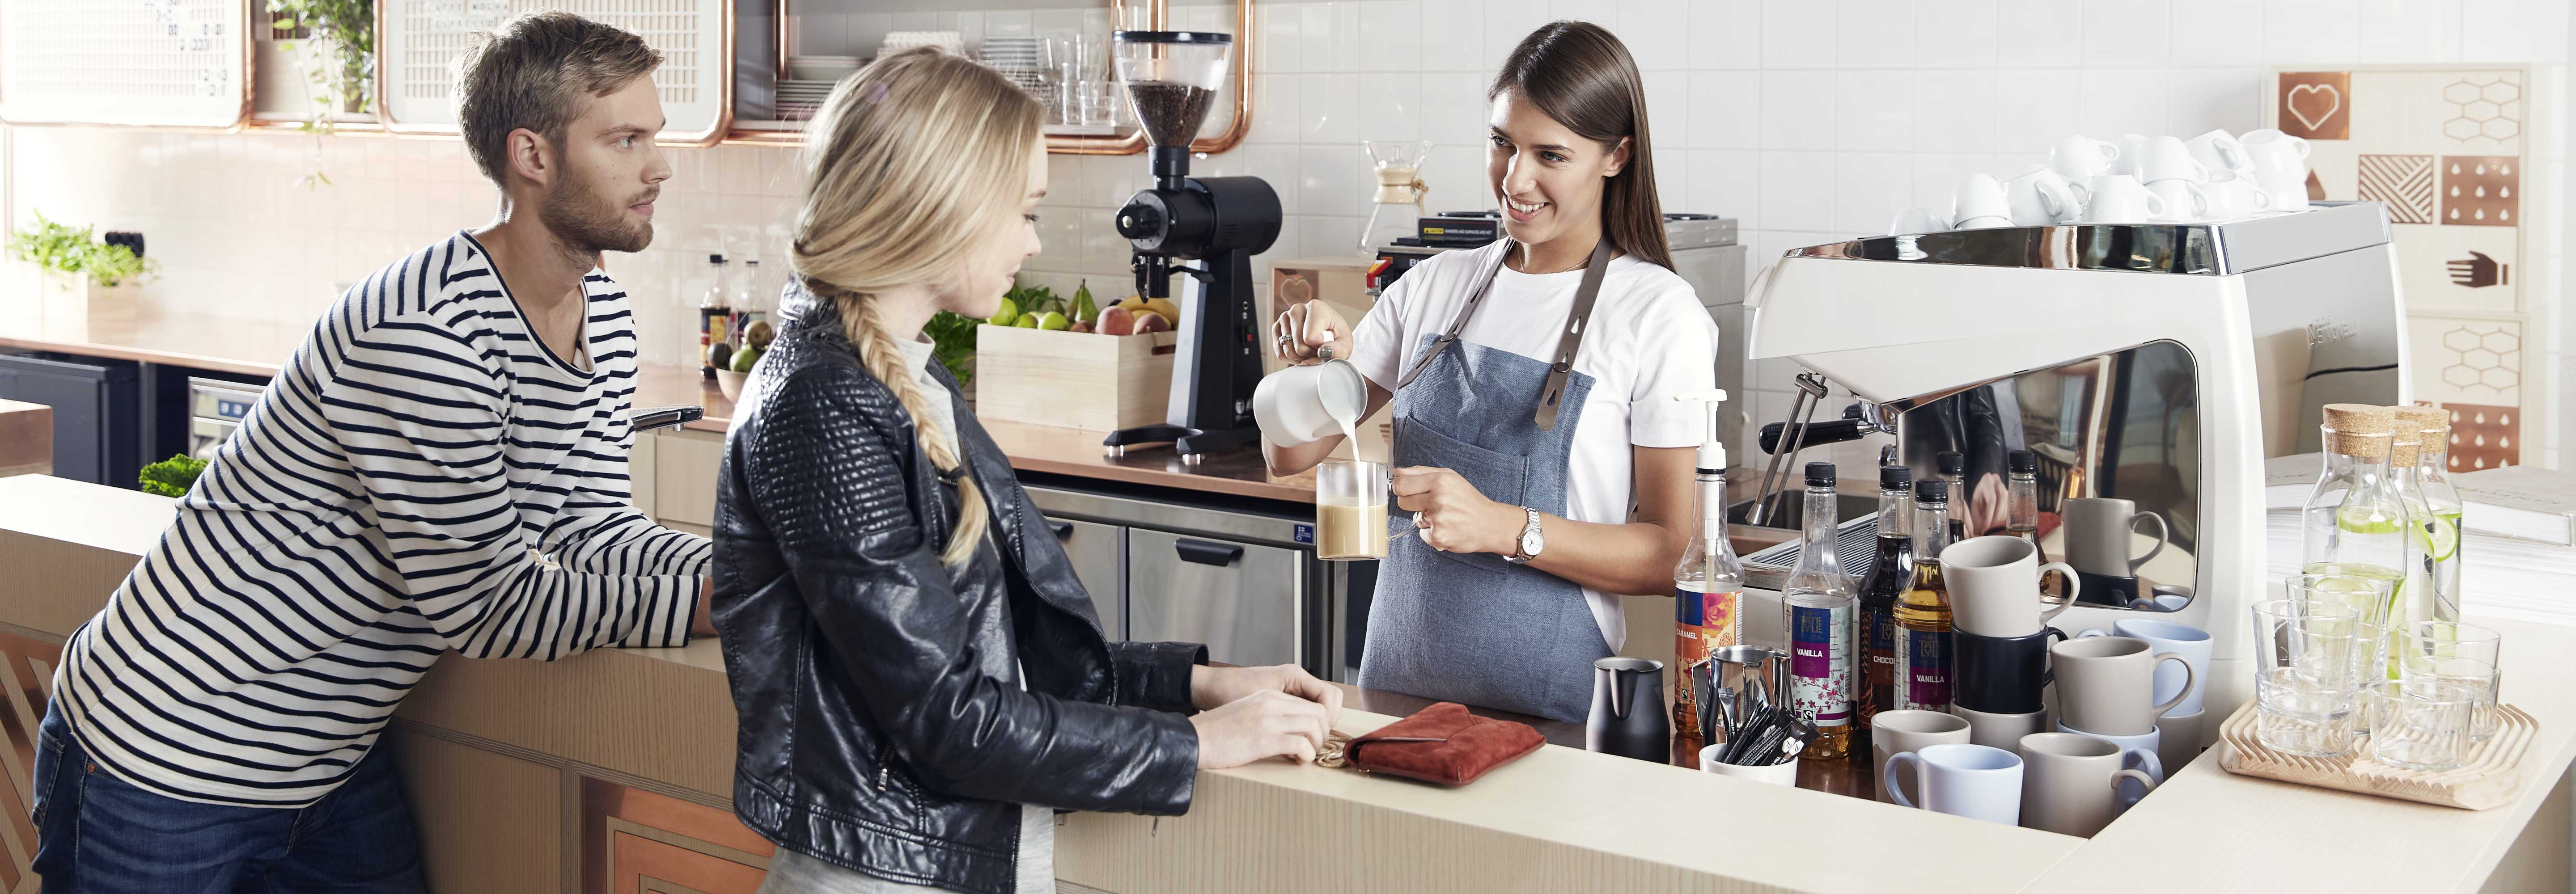 Coffee Sercvice for Professionals - Paulig.jpg